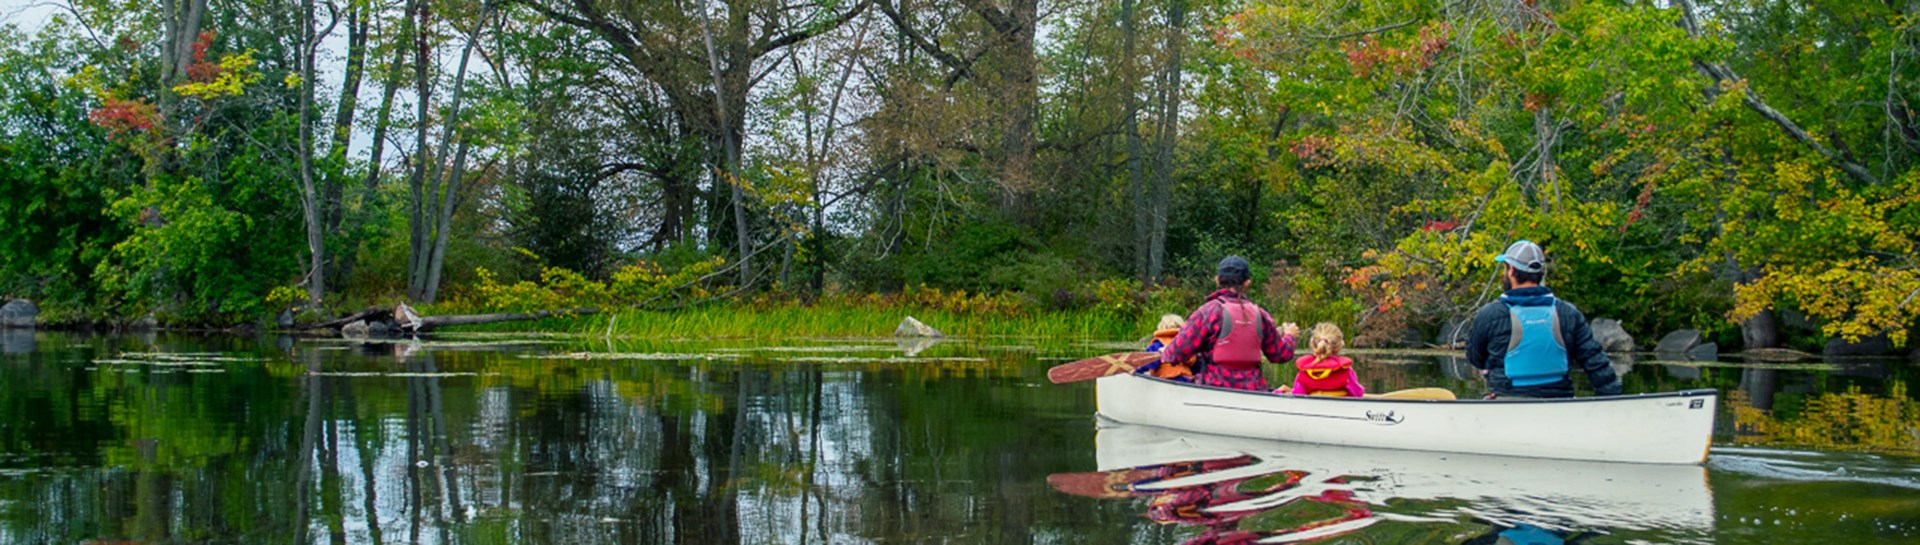 Family canoeing through Percy Reach Trent Severn Waterway in fall